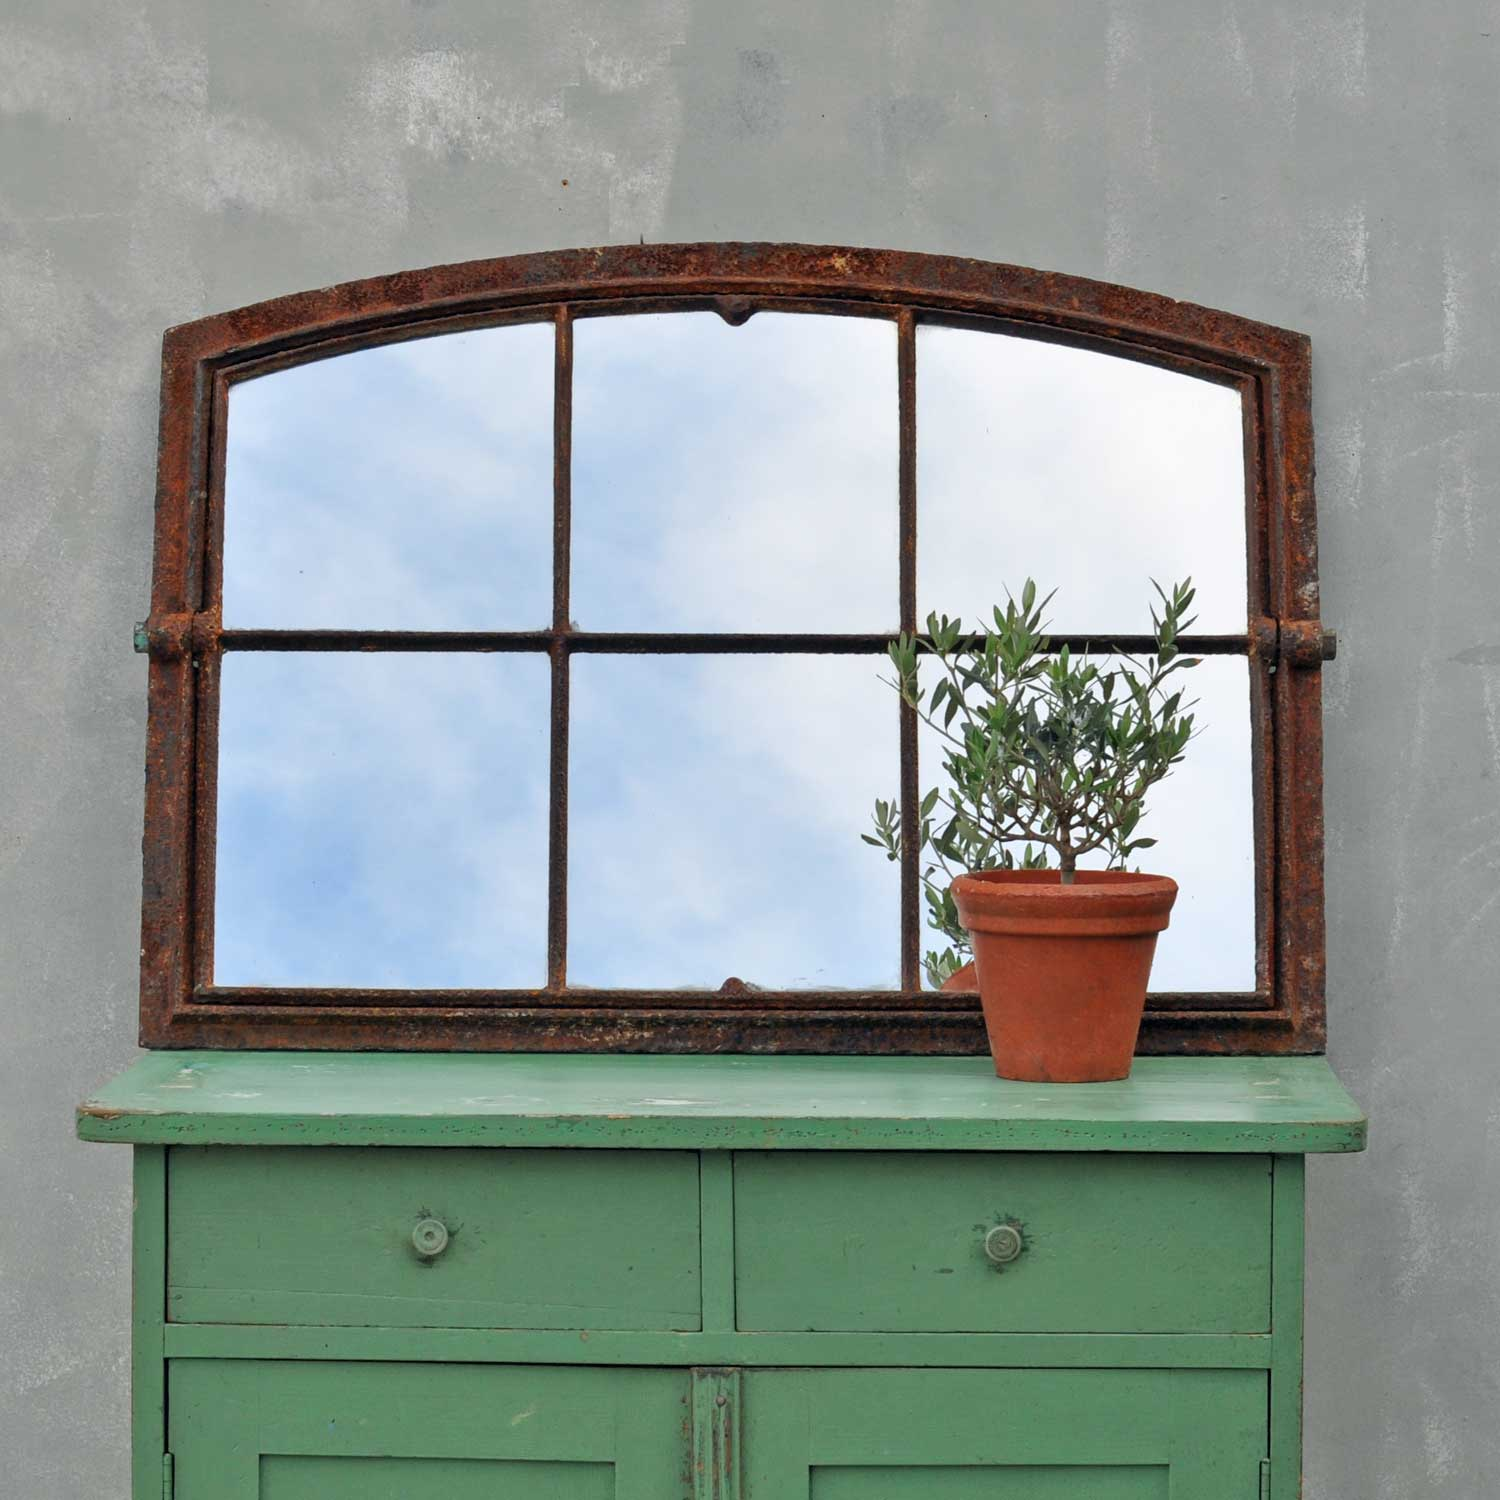 Cast Iron Arch Topped Window Mirror Small